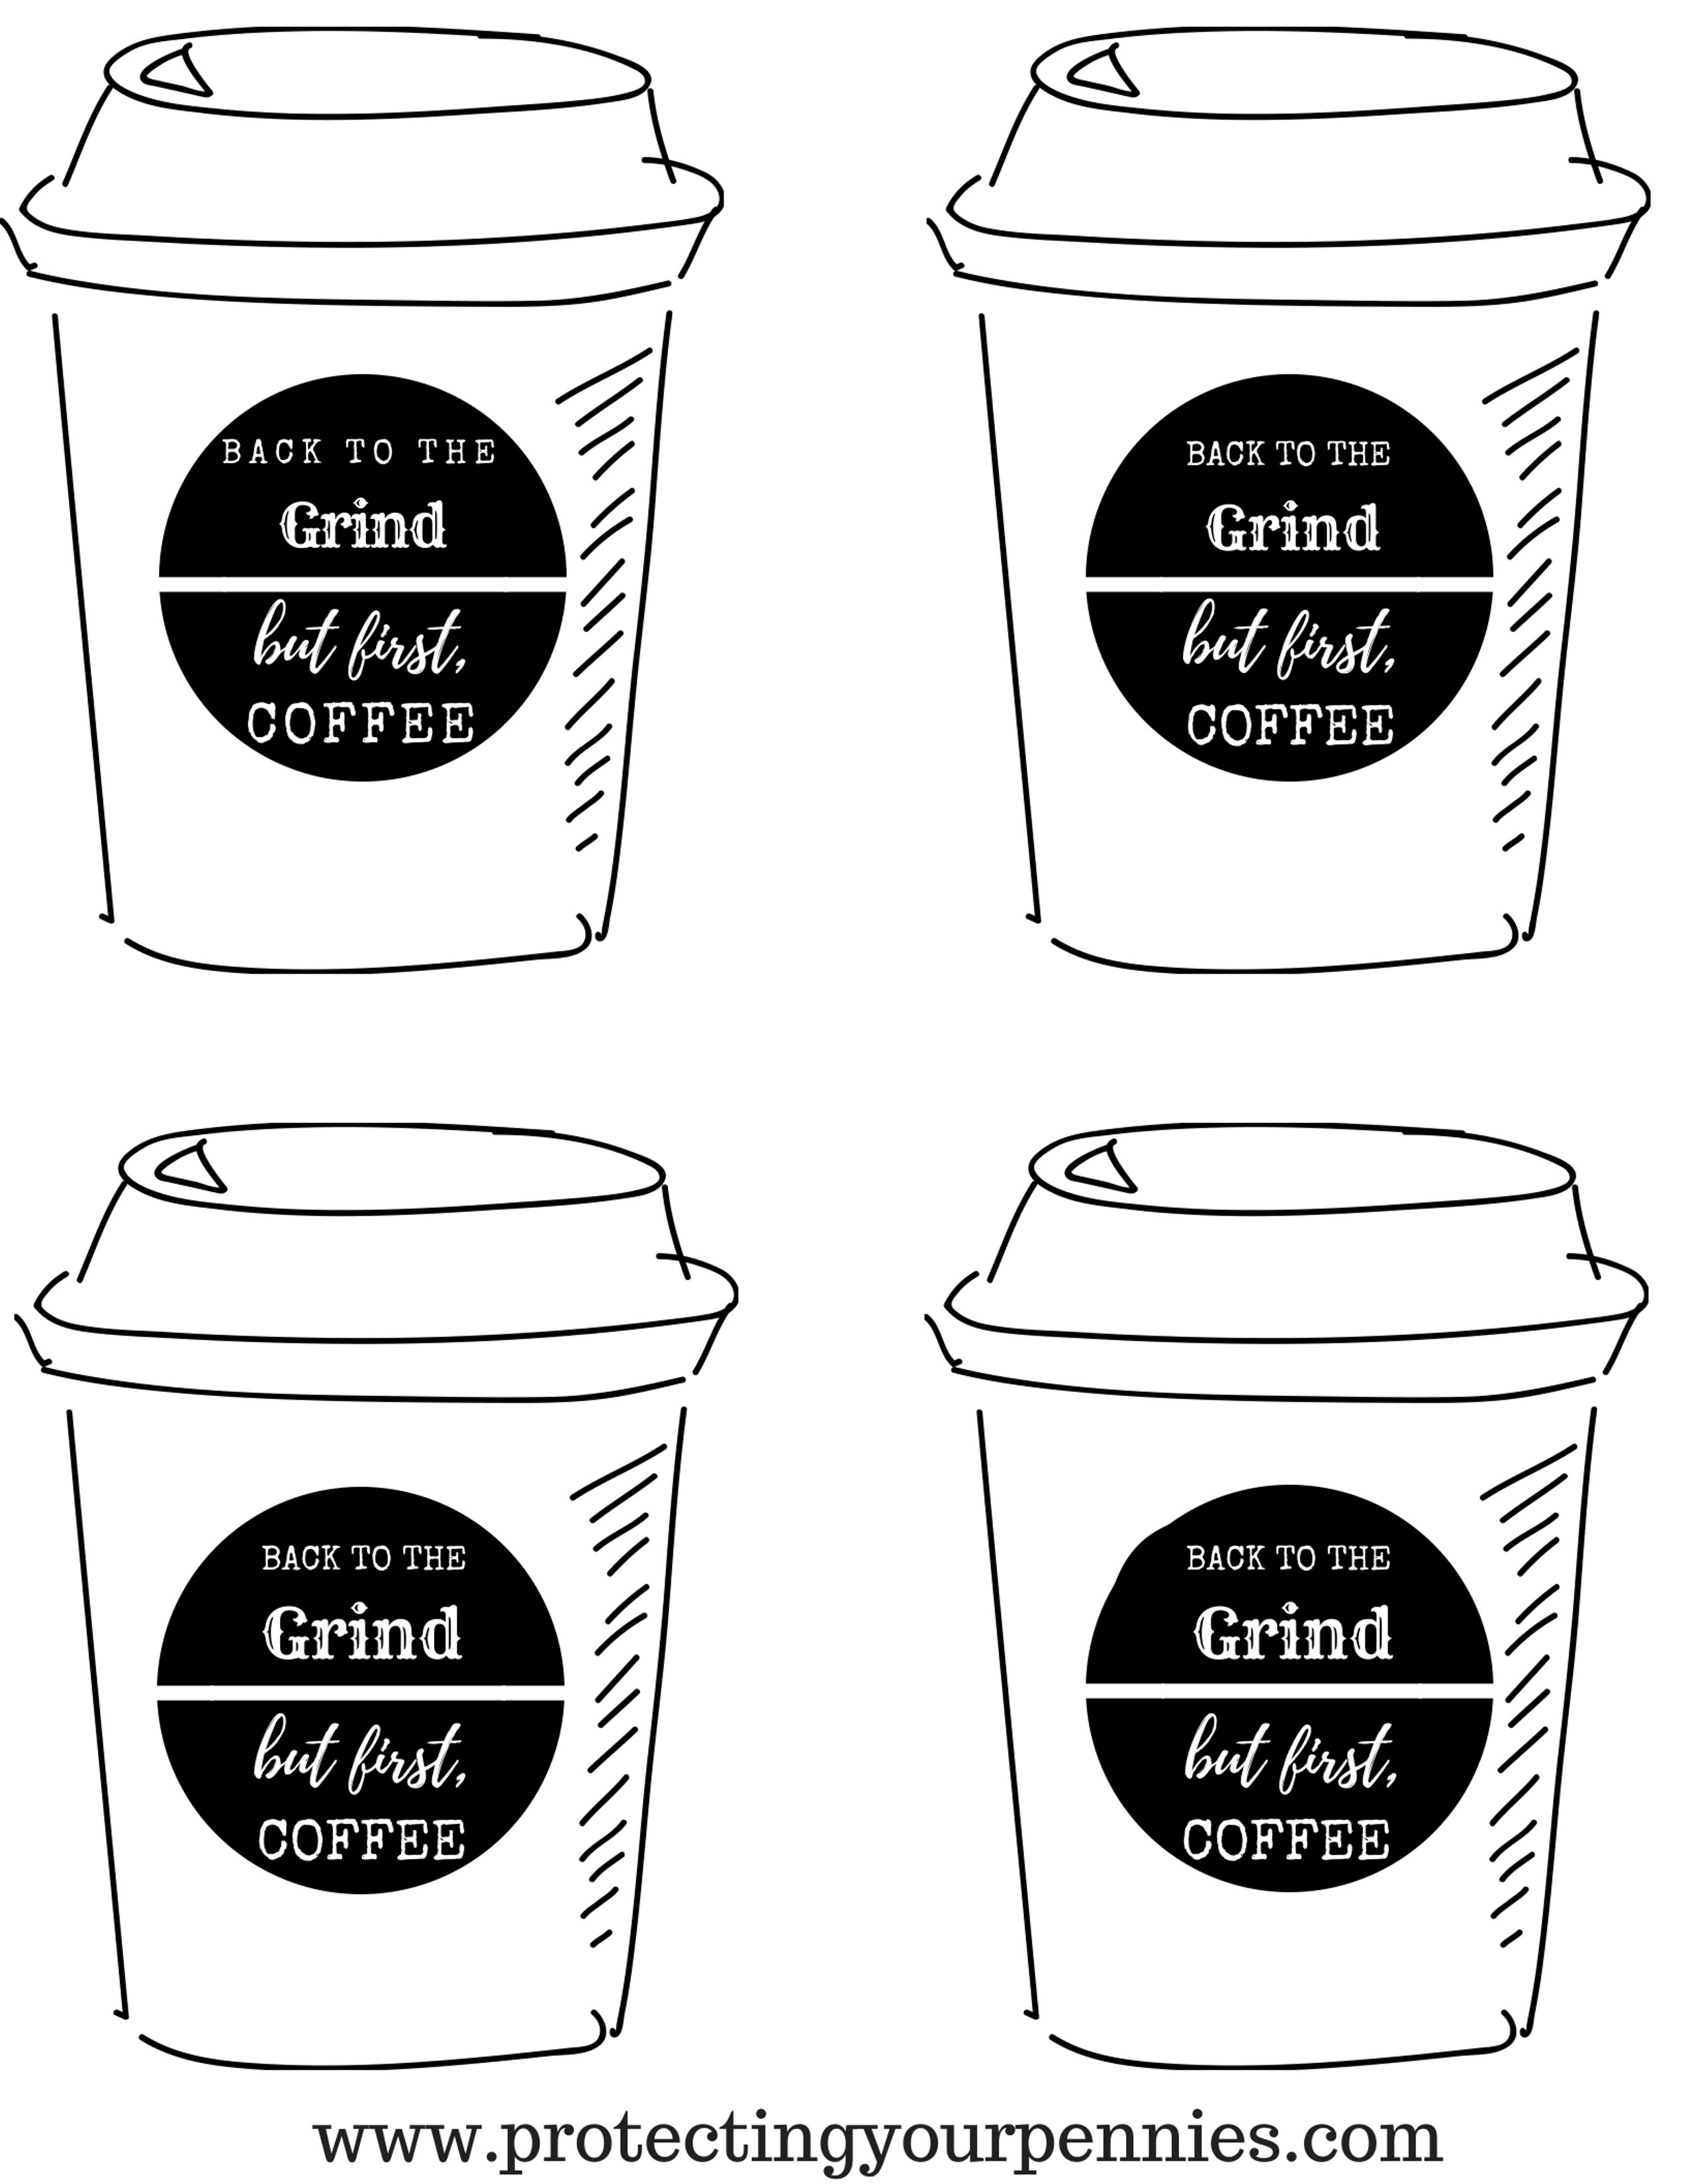 Back to the Grind Printable Tag Image